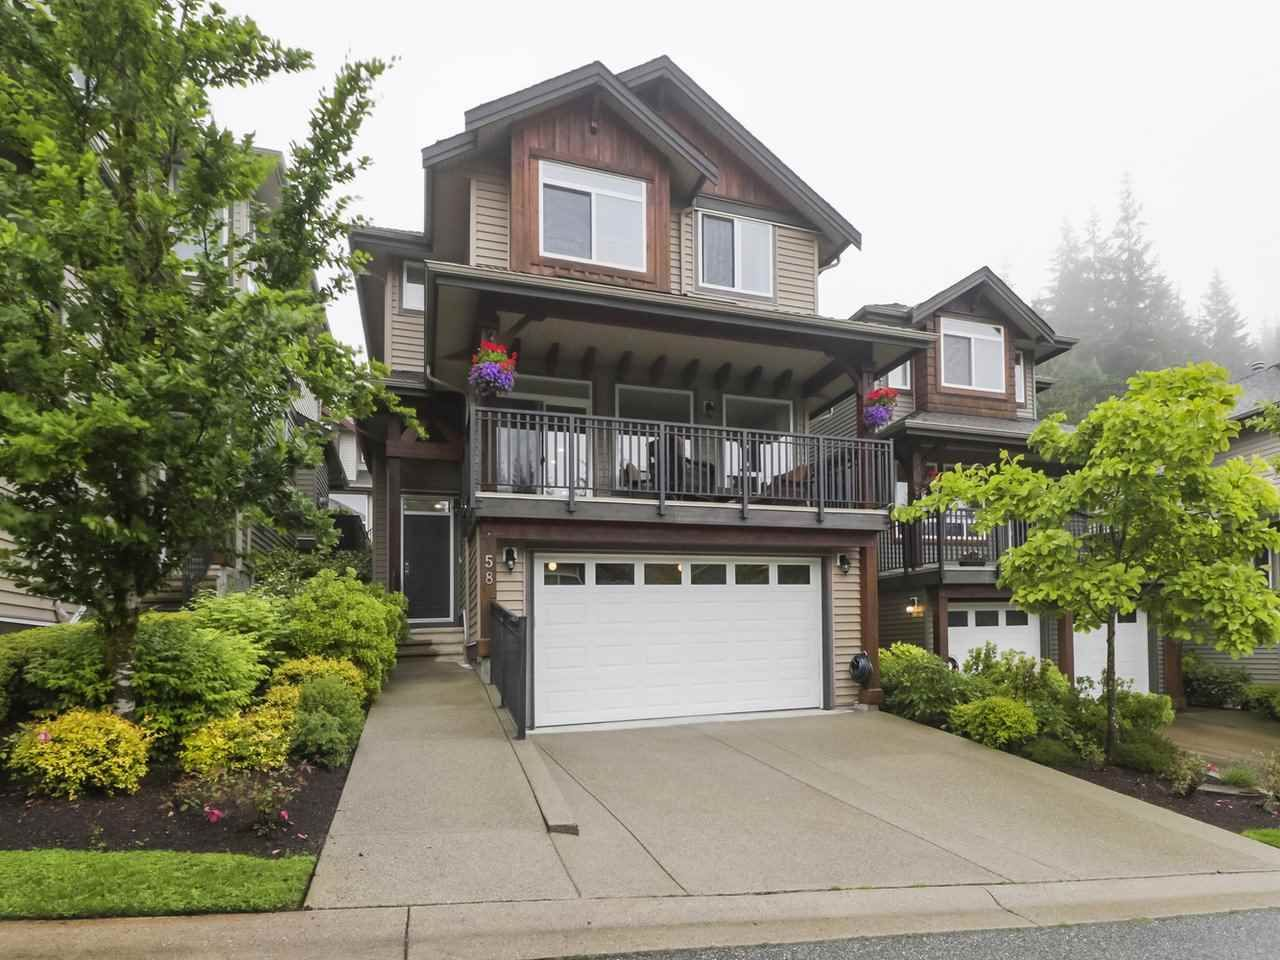 Main Photo: 58 1701 PARKWAY BOULEVARD in Coquitlam: Westwood Plateau House for sale : MLS®# R2465784